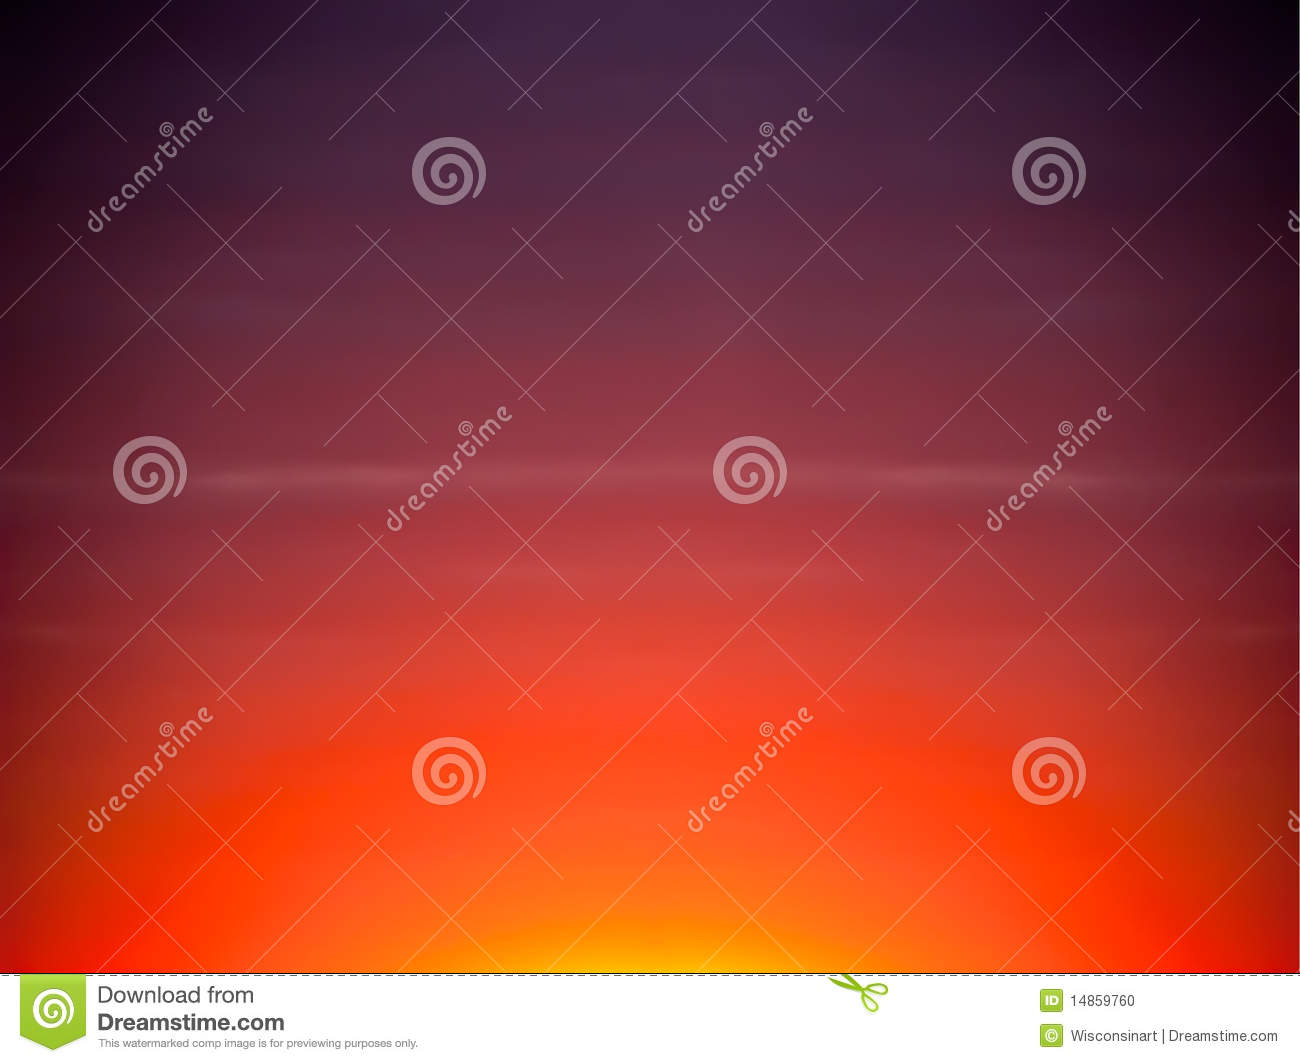 Sunrise Sunset Abstract Sky Background, Colors